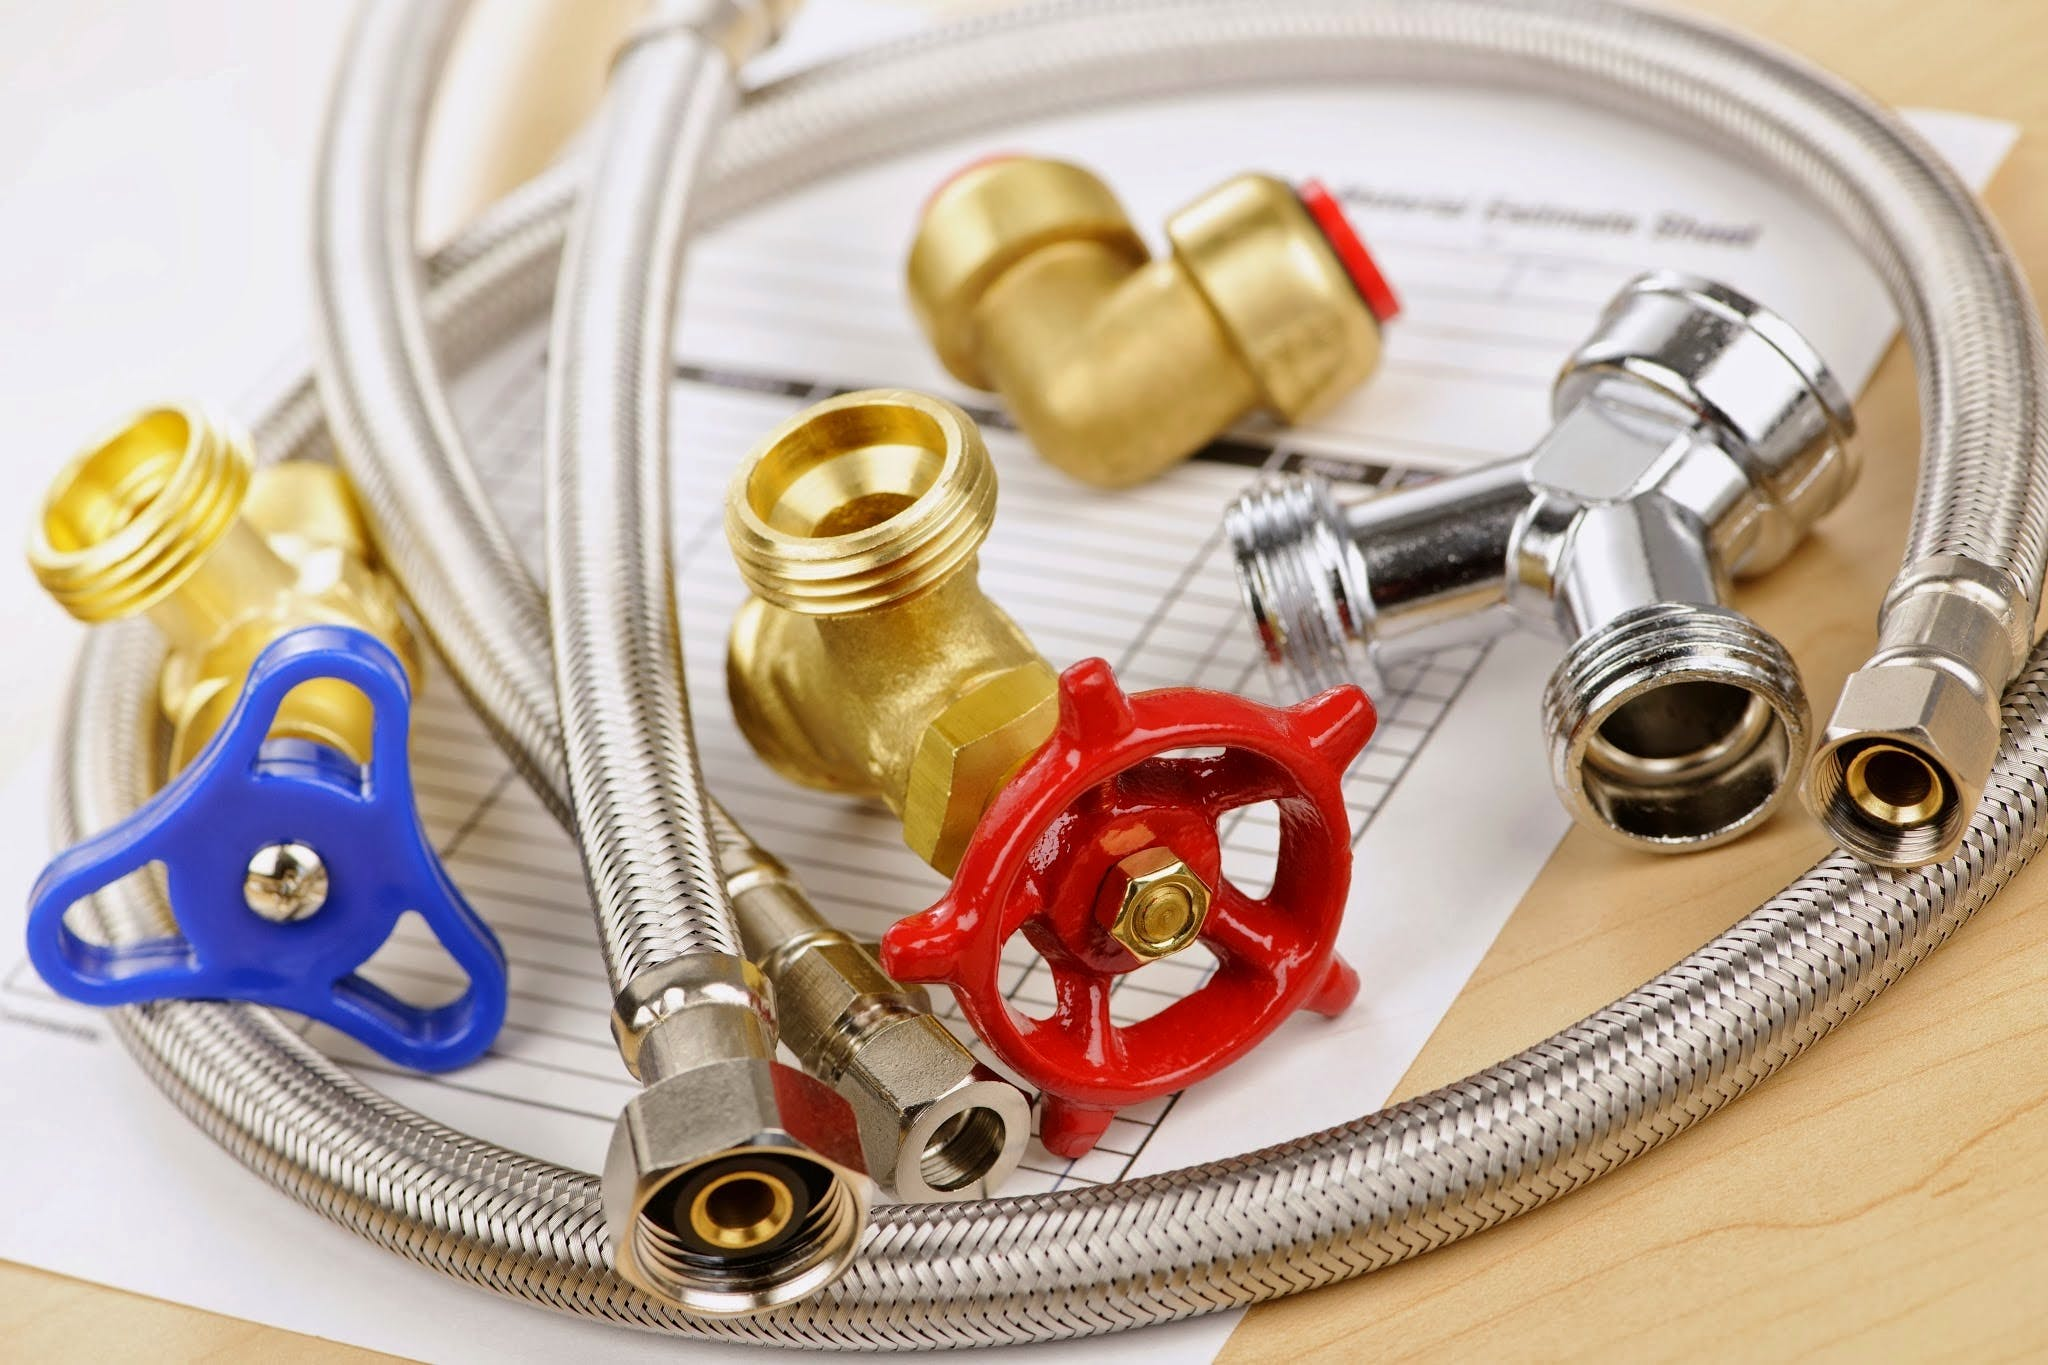 Smart Plumbing and Electrical Solutions (SPES)